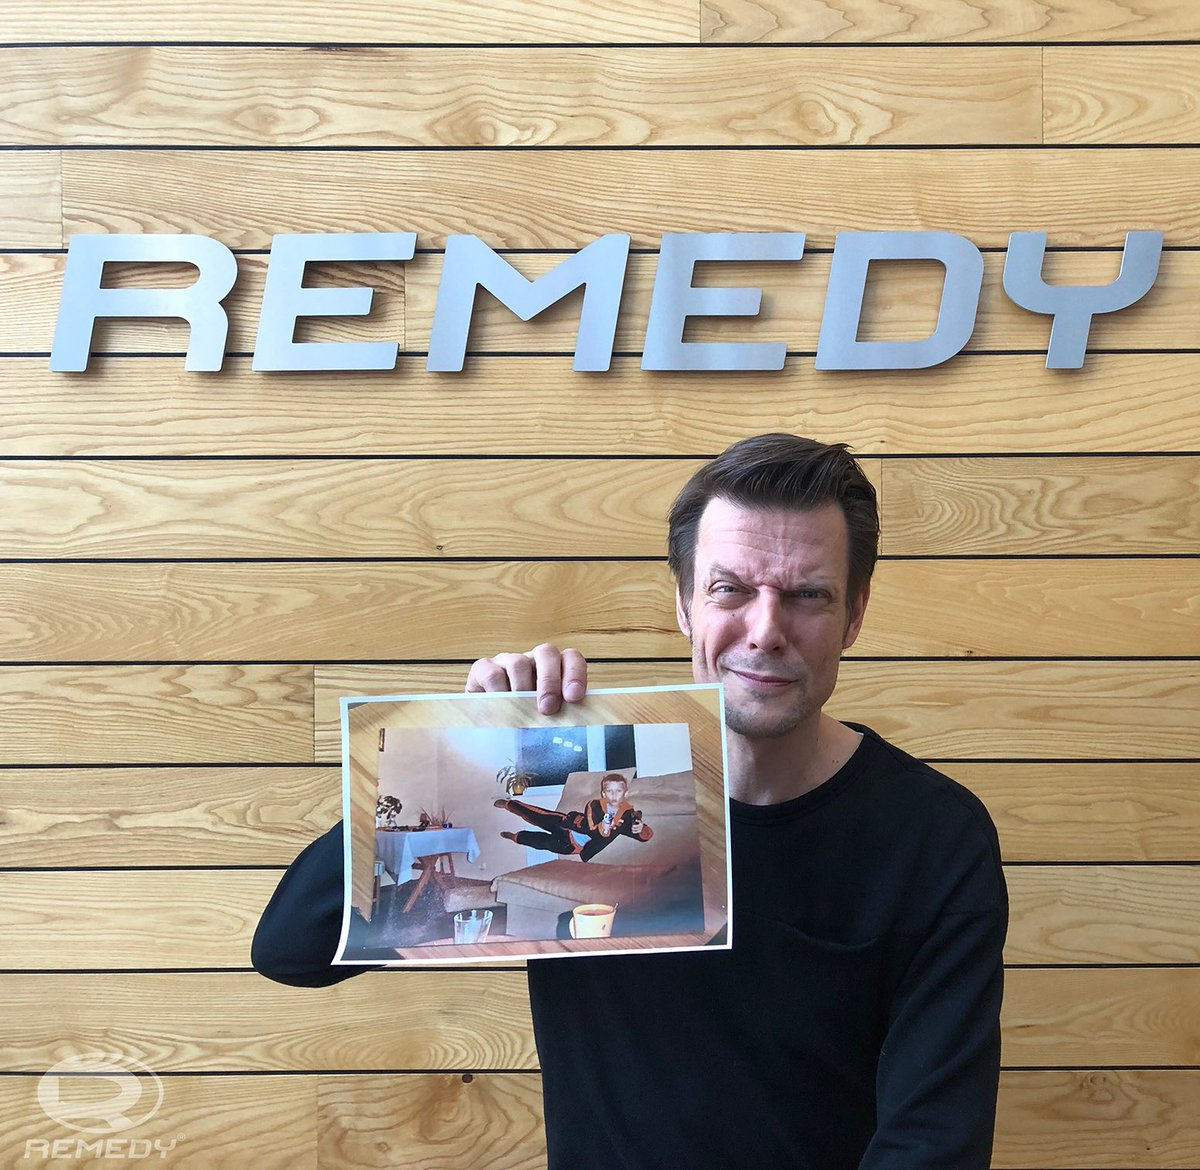 Remedy Entertainment On Twitter Hey Guess What He Loves It